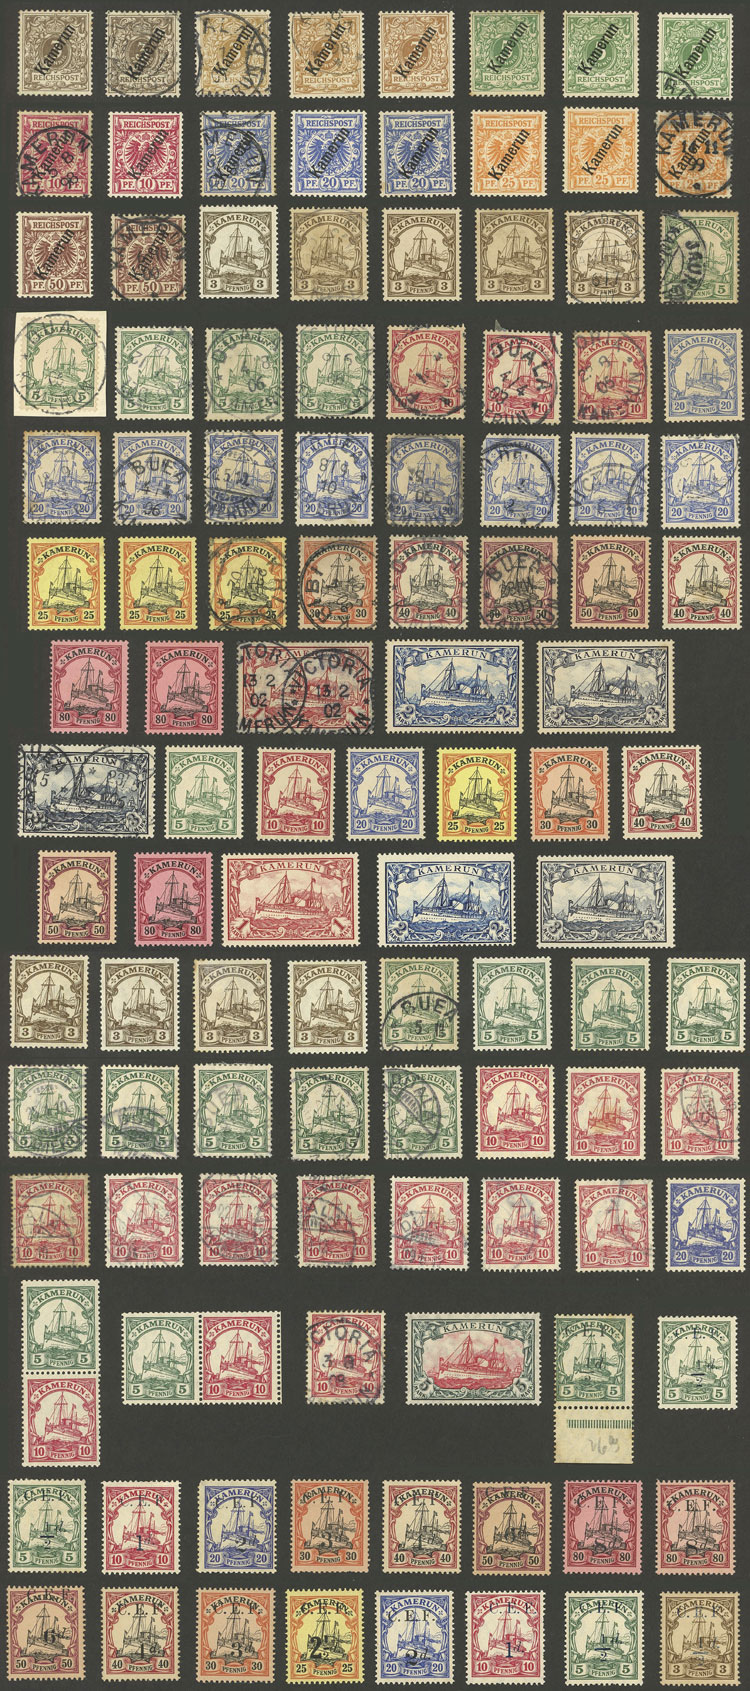 Lot 207 - GERMANY - CAMEROON Lots and Collections -  Guillermo Jalil - Philatino Auction #1920 WORLDWIDE + ARGENTINA: General May auction